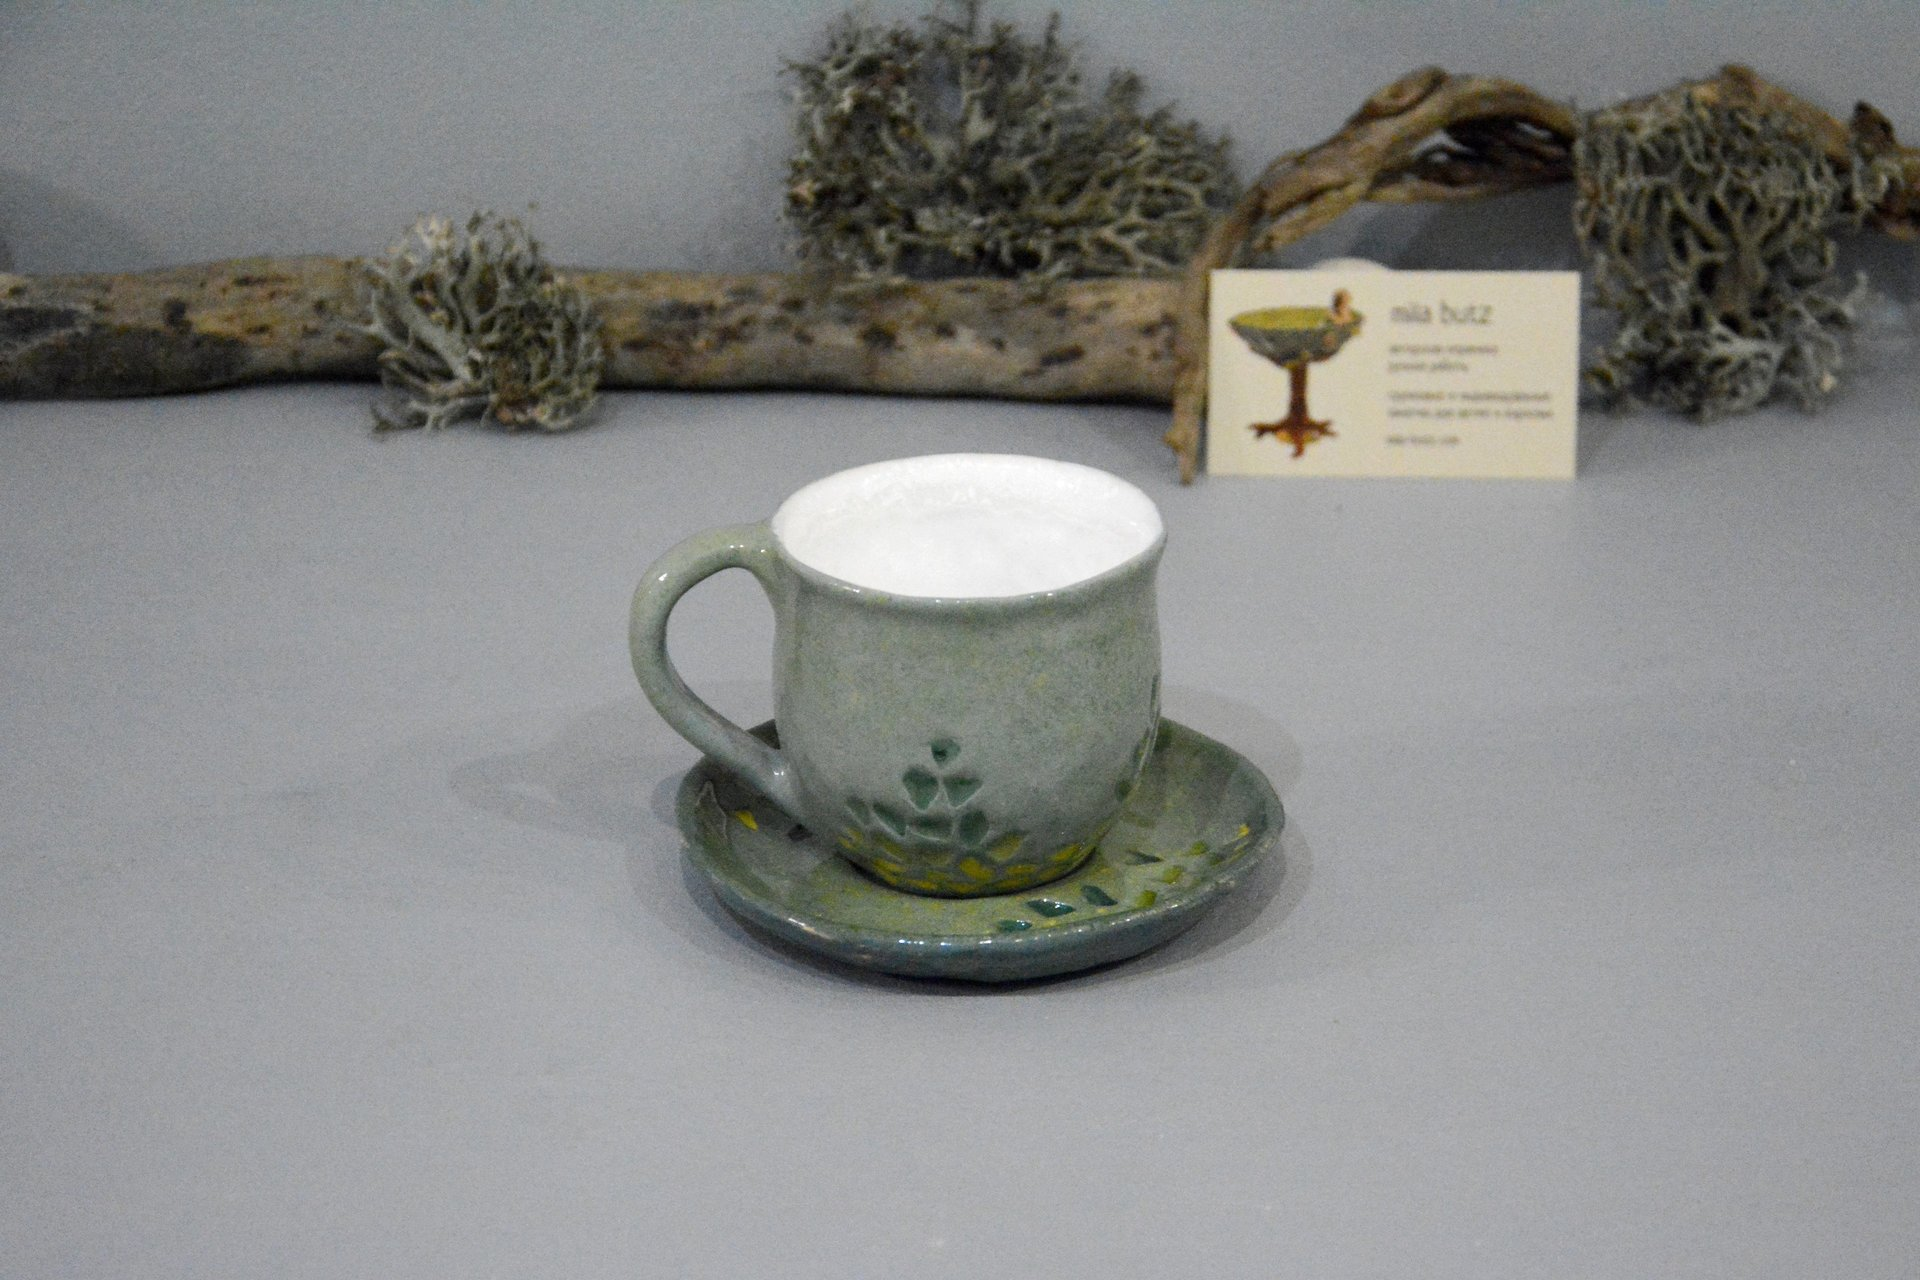 Gray cup for tea or coffee, height - 7 cm, volume - 220 ml, photo 3 of 8.